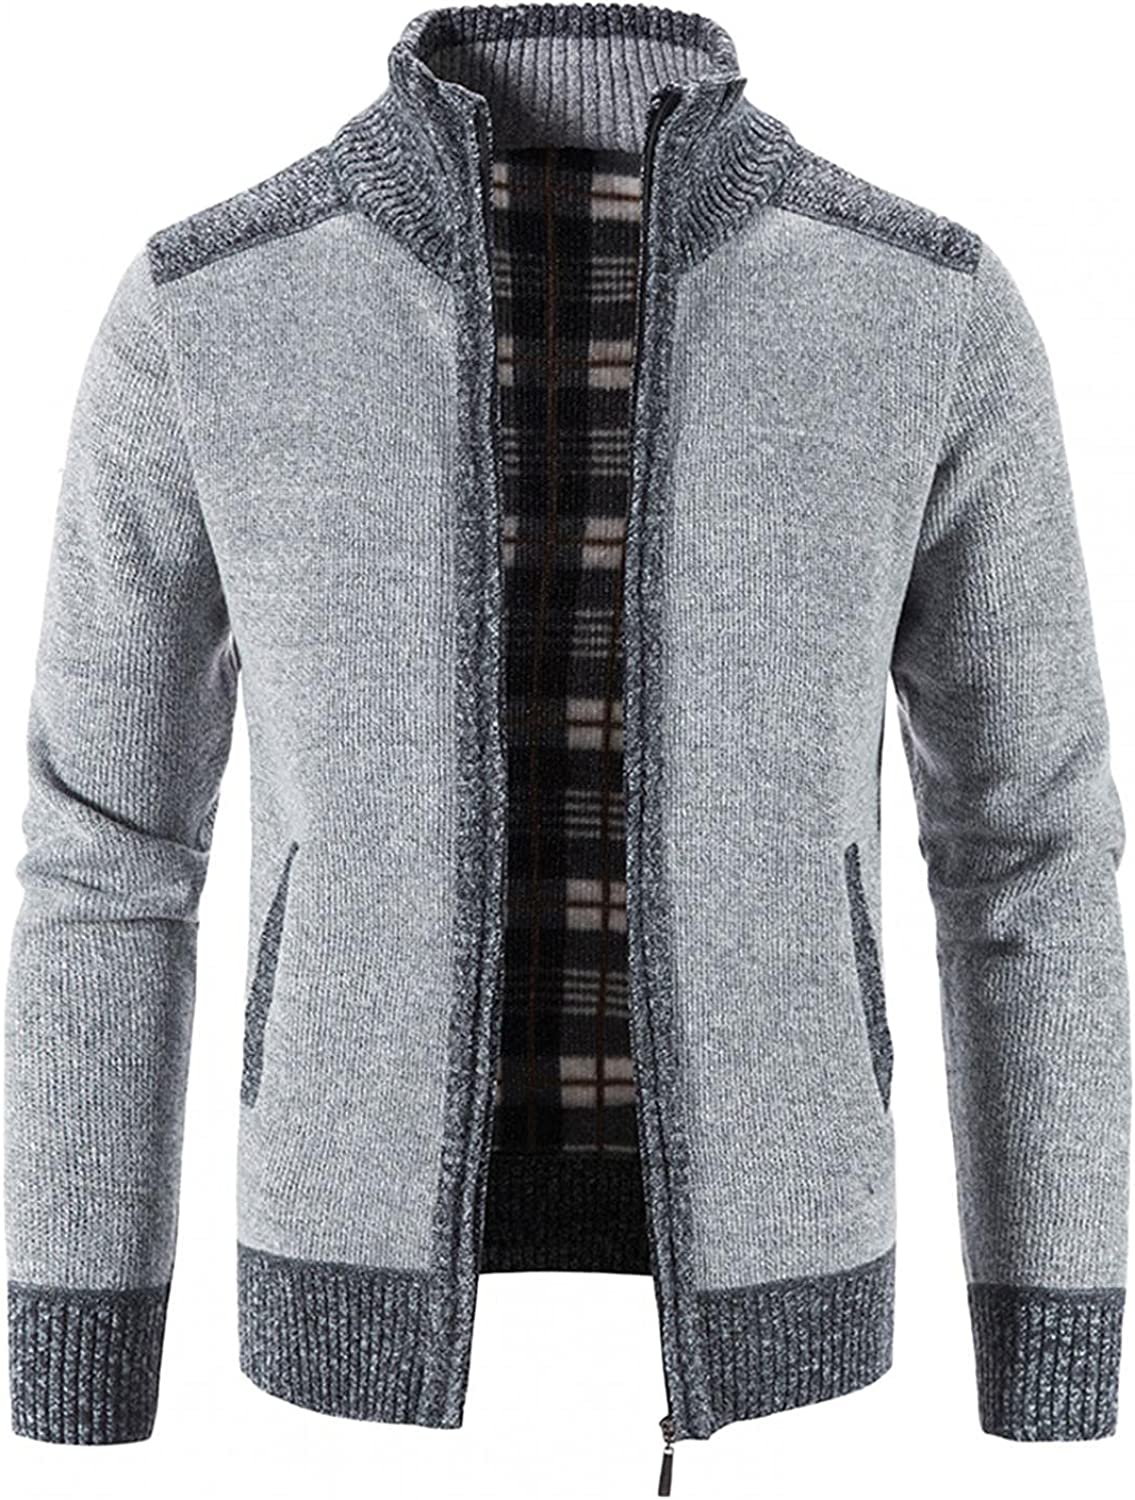 Men's Cardigan Sweaters Full Zip Up Stand Collar Slim Fit Casual Knitted Sweater Winter Warm Fleece Knit Jacket Coat